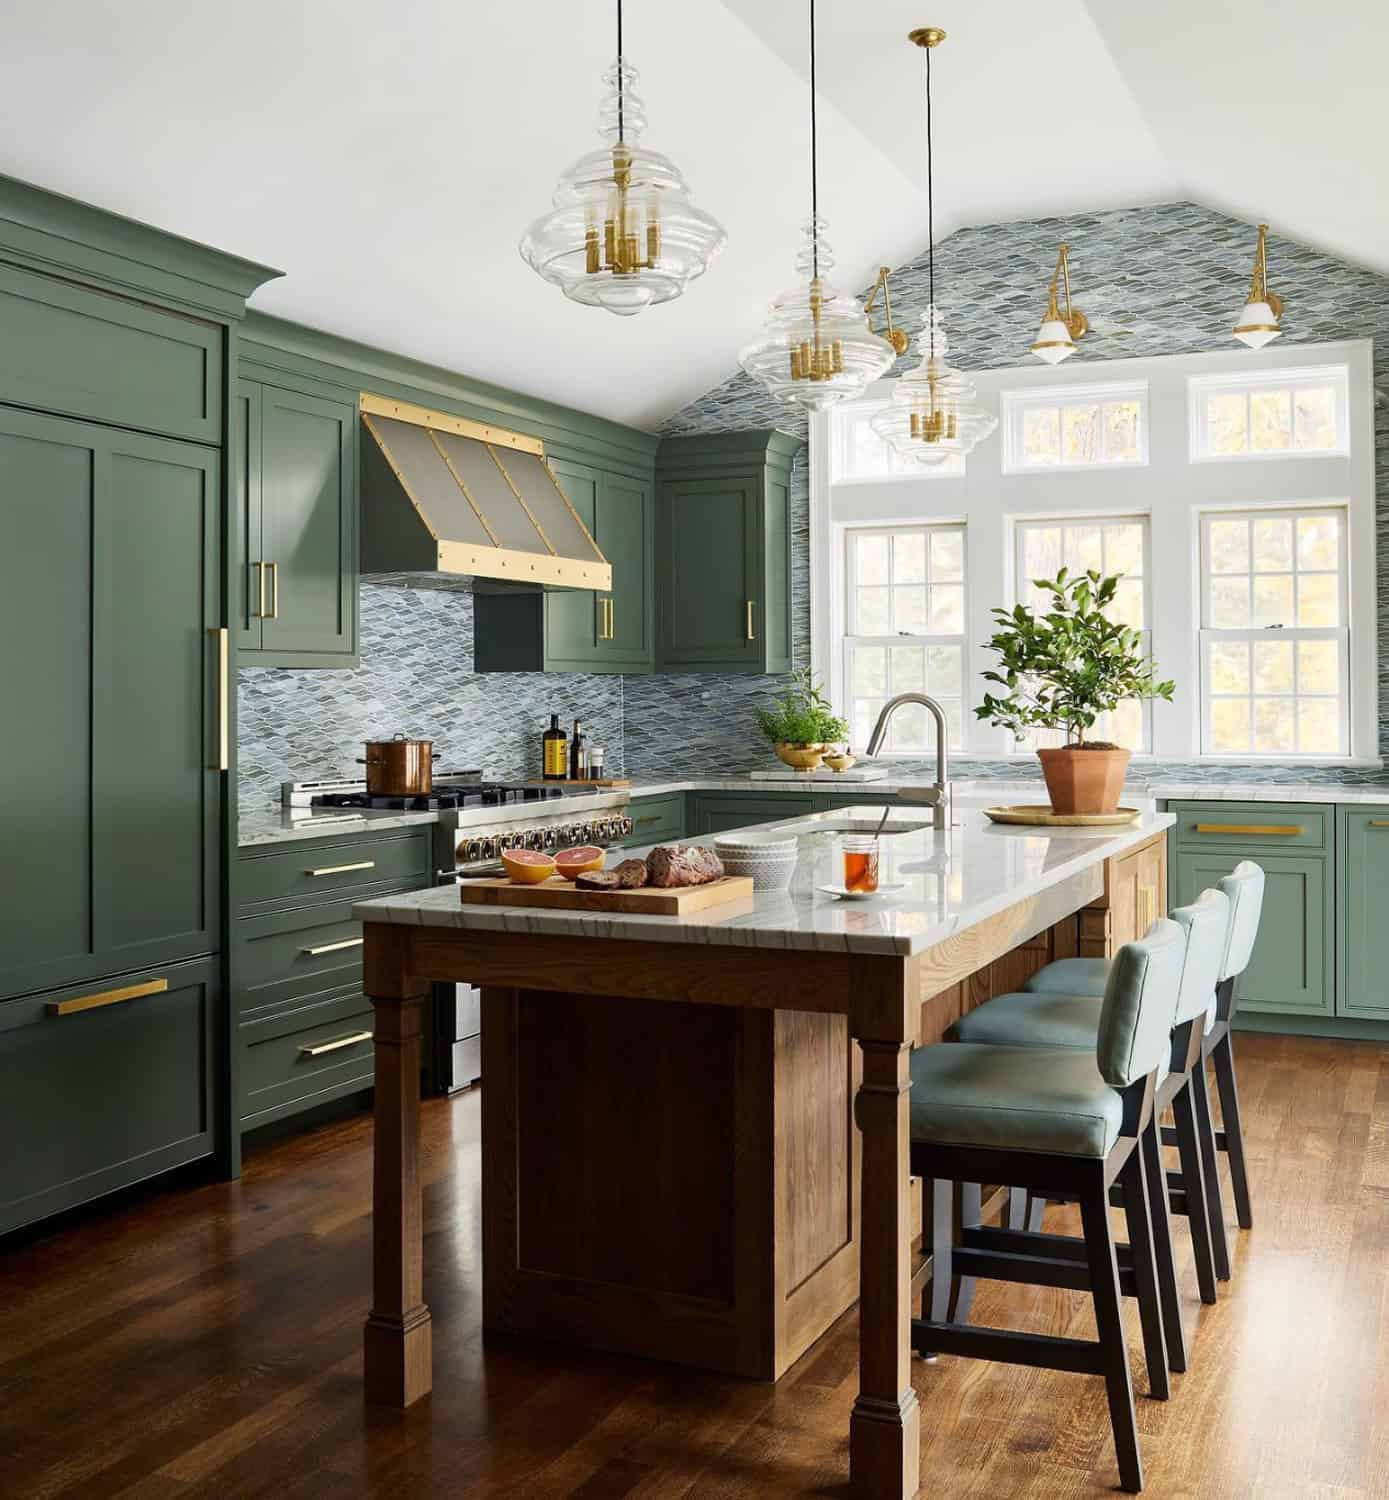 green cabinets with tiles wall